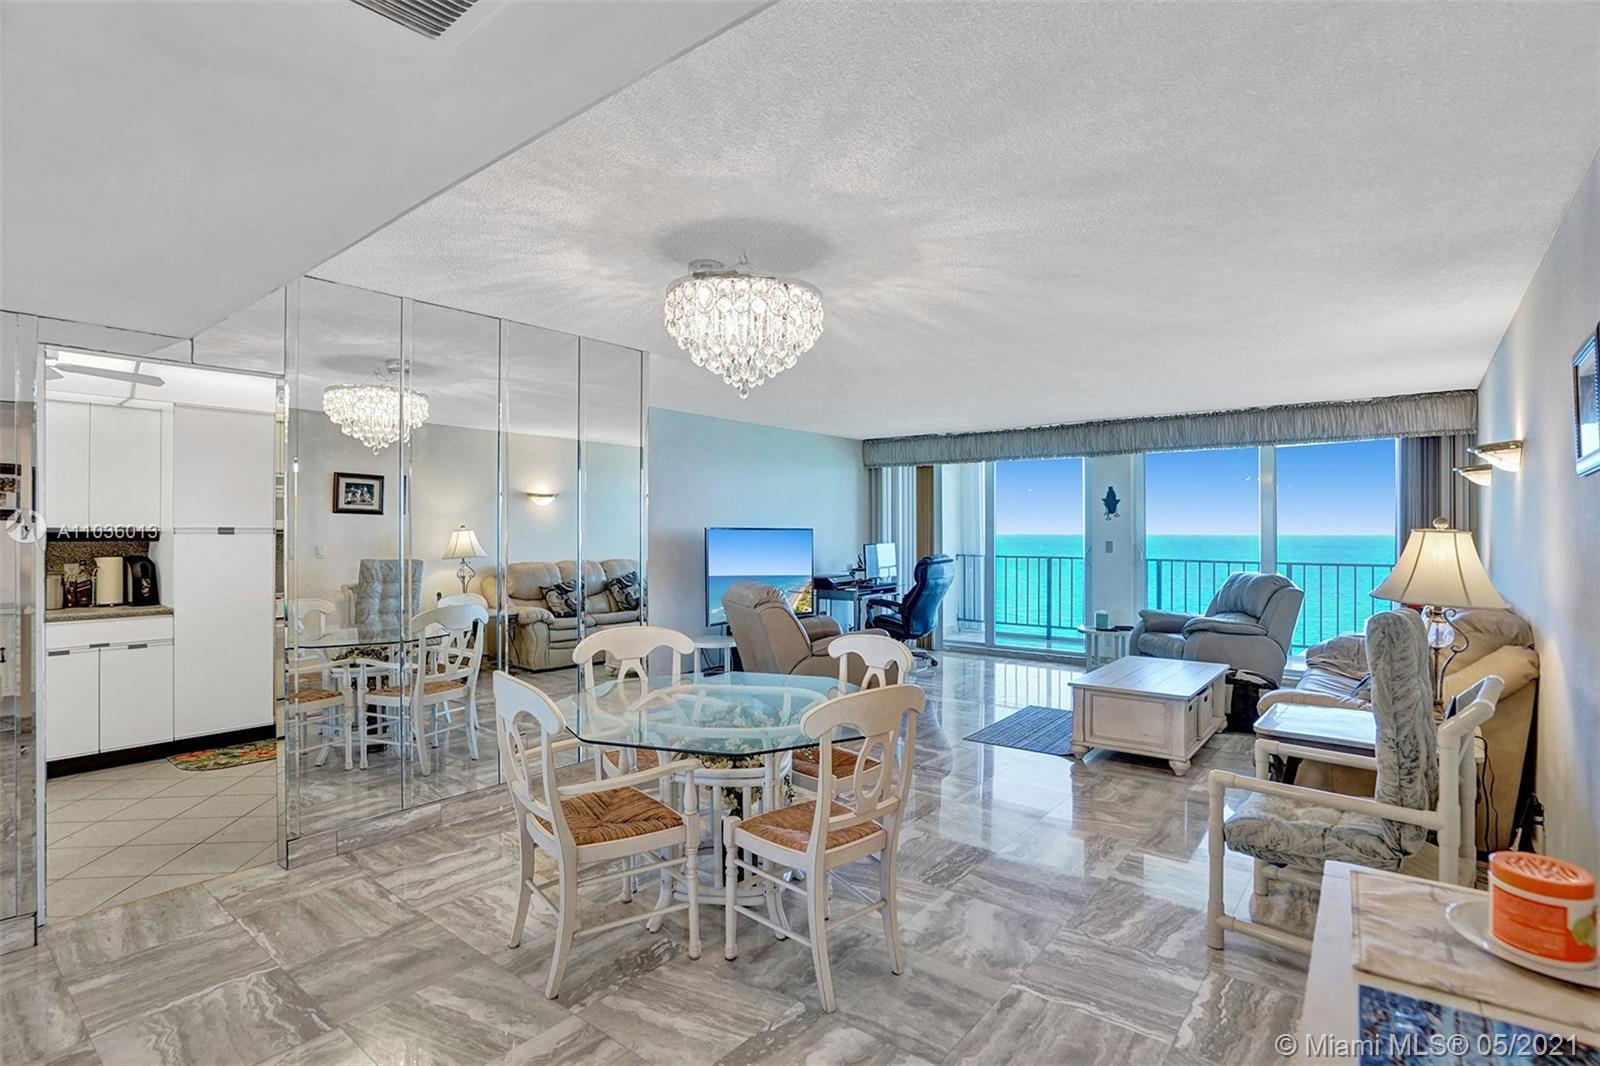 Beachfront!! Direct Ocean View!! One of a kind with Multi Million Dollar View!!There are very few co